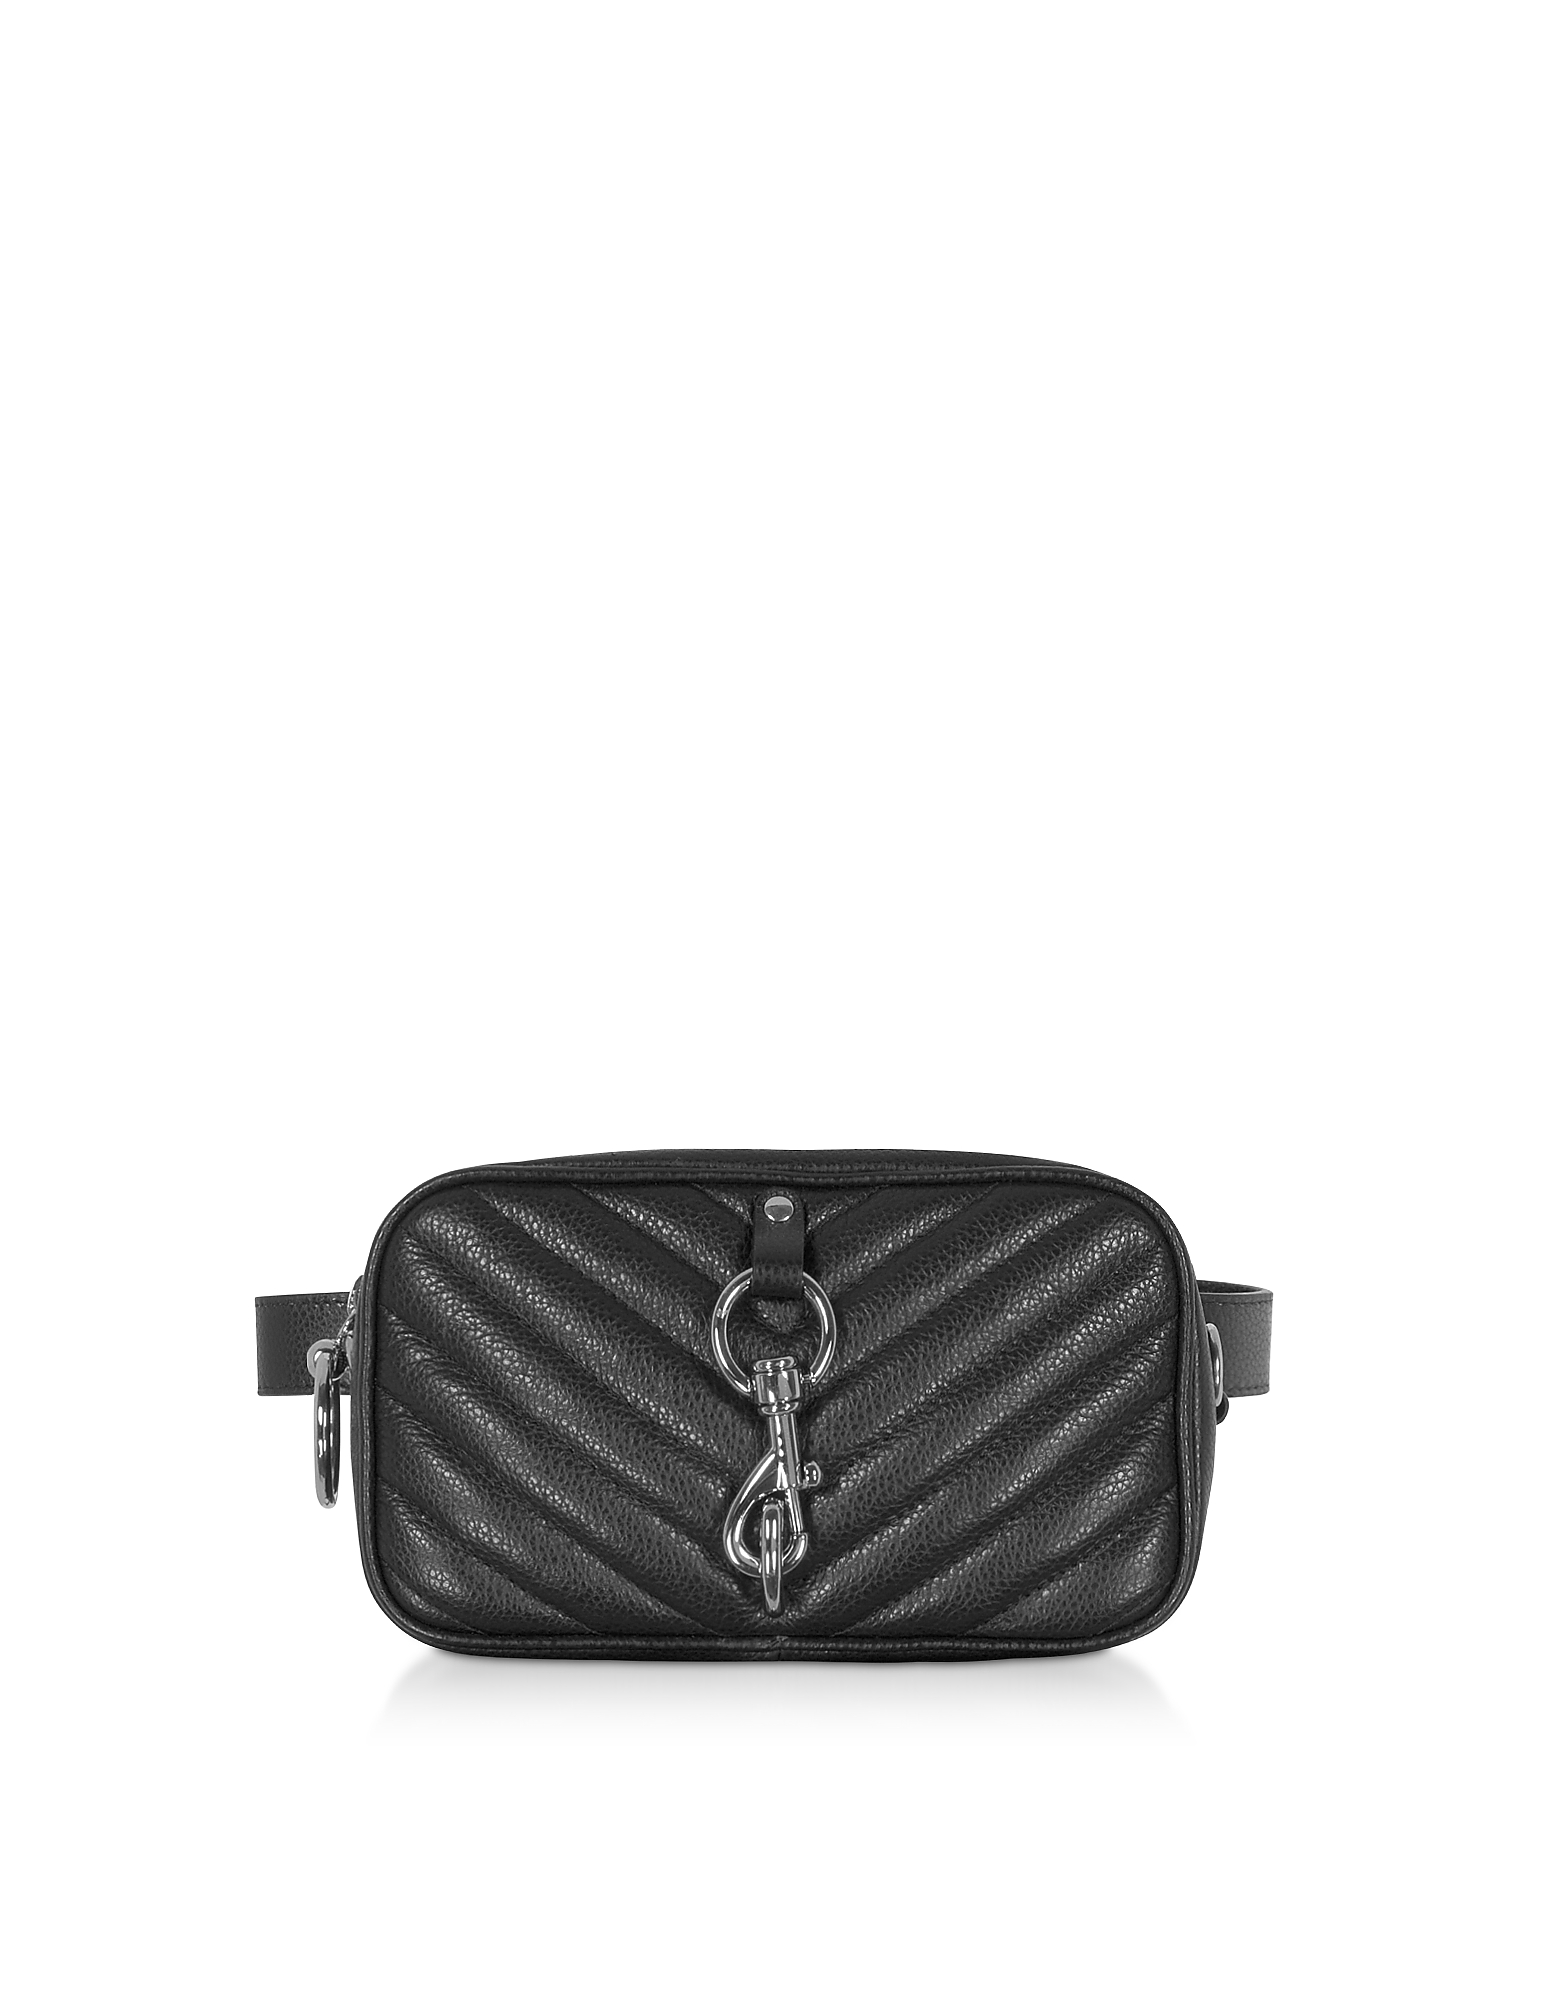 Rebecca Minkoff Designer Handbags, Pebbled Leather Camera Belt Bag